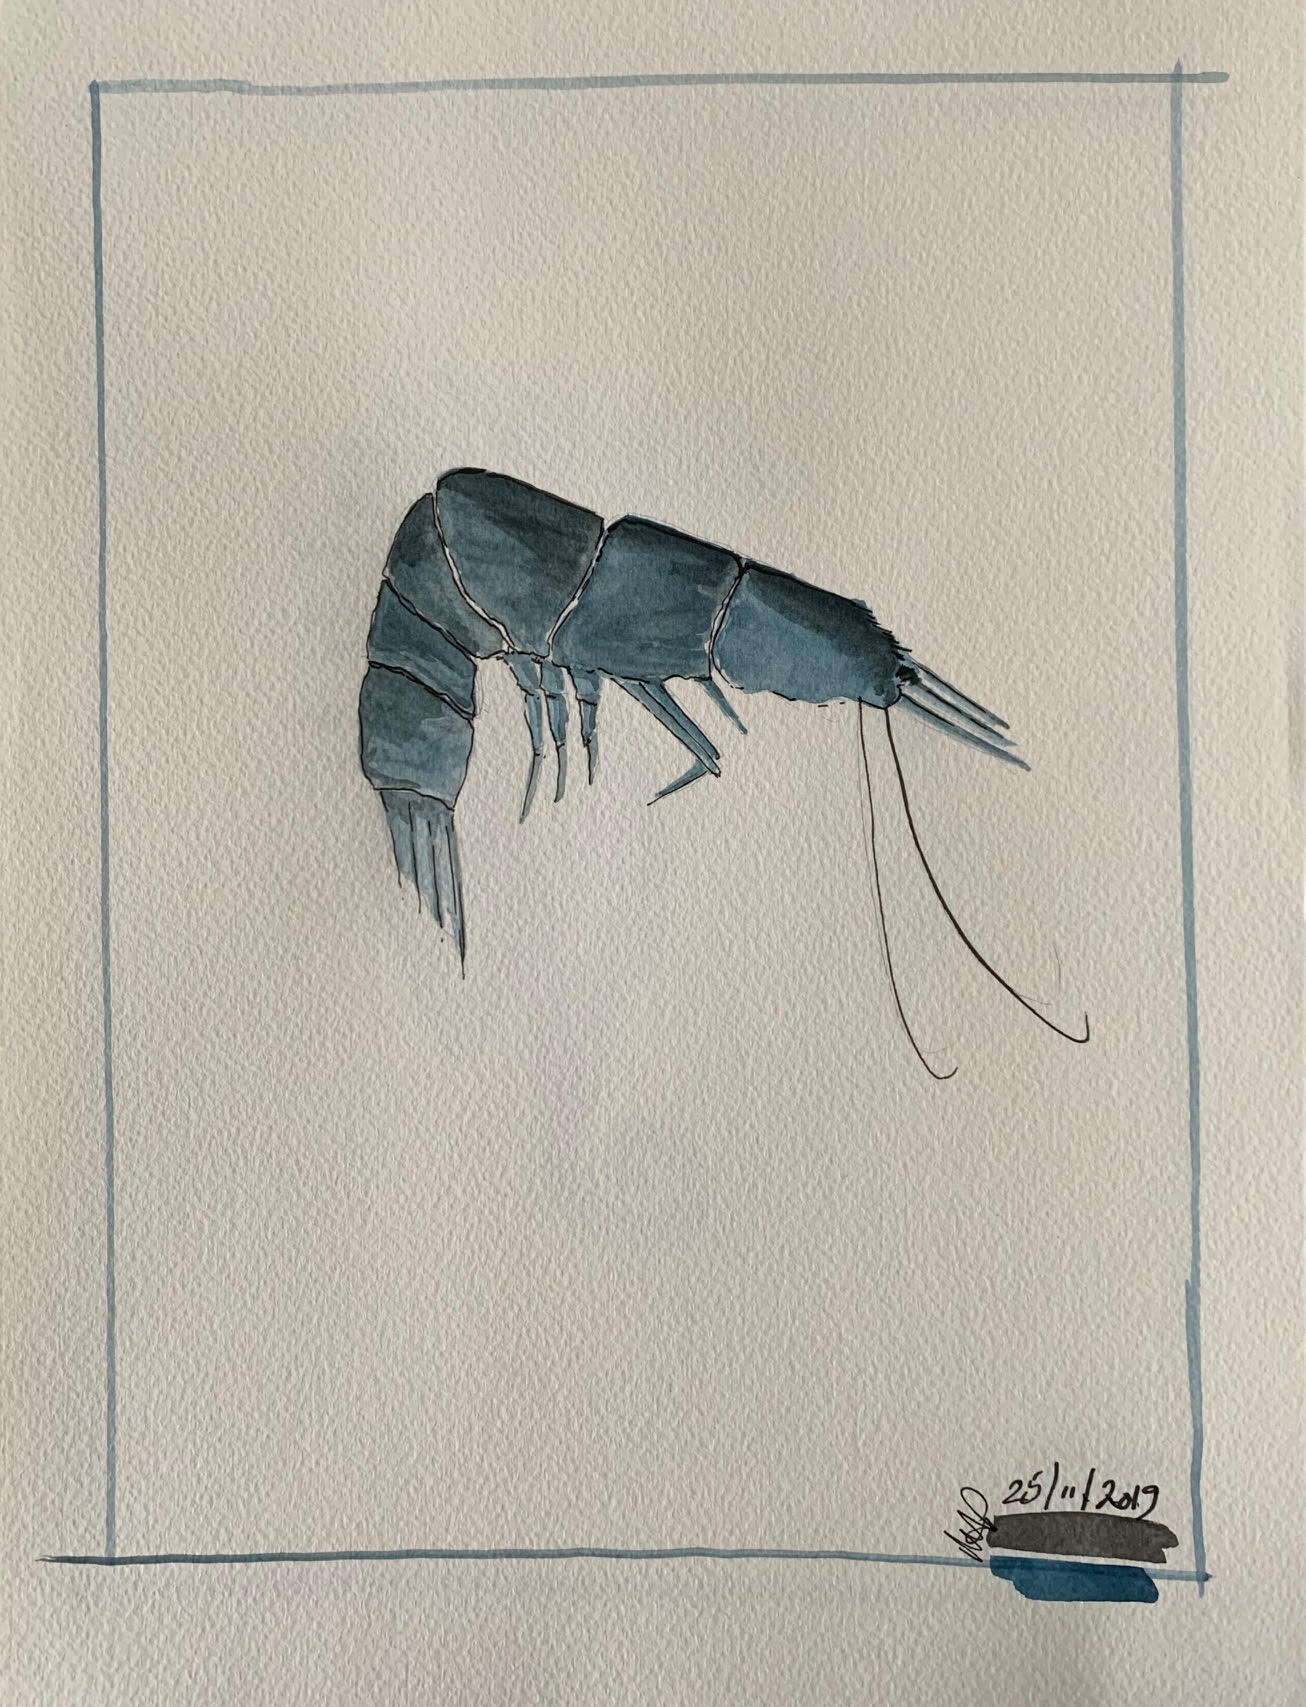 shrimp on holiday michele peryer